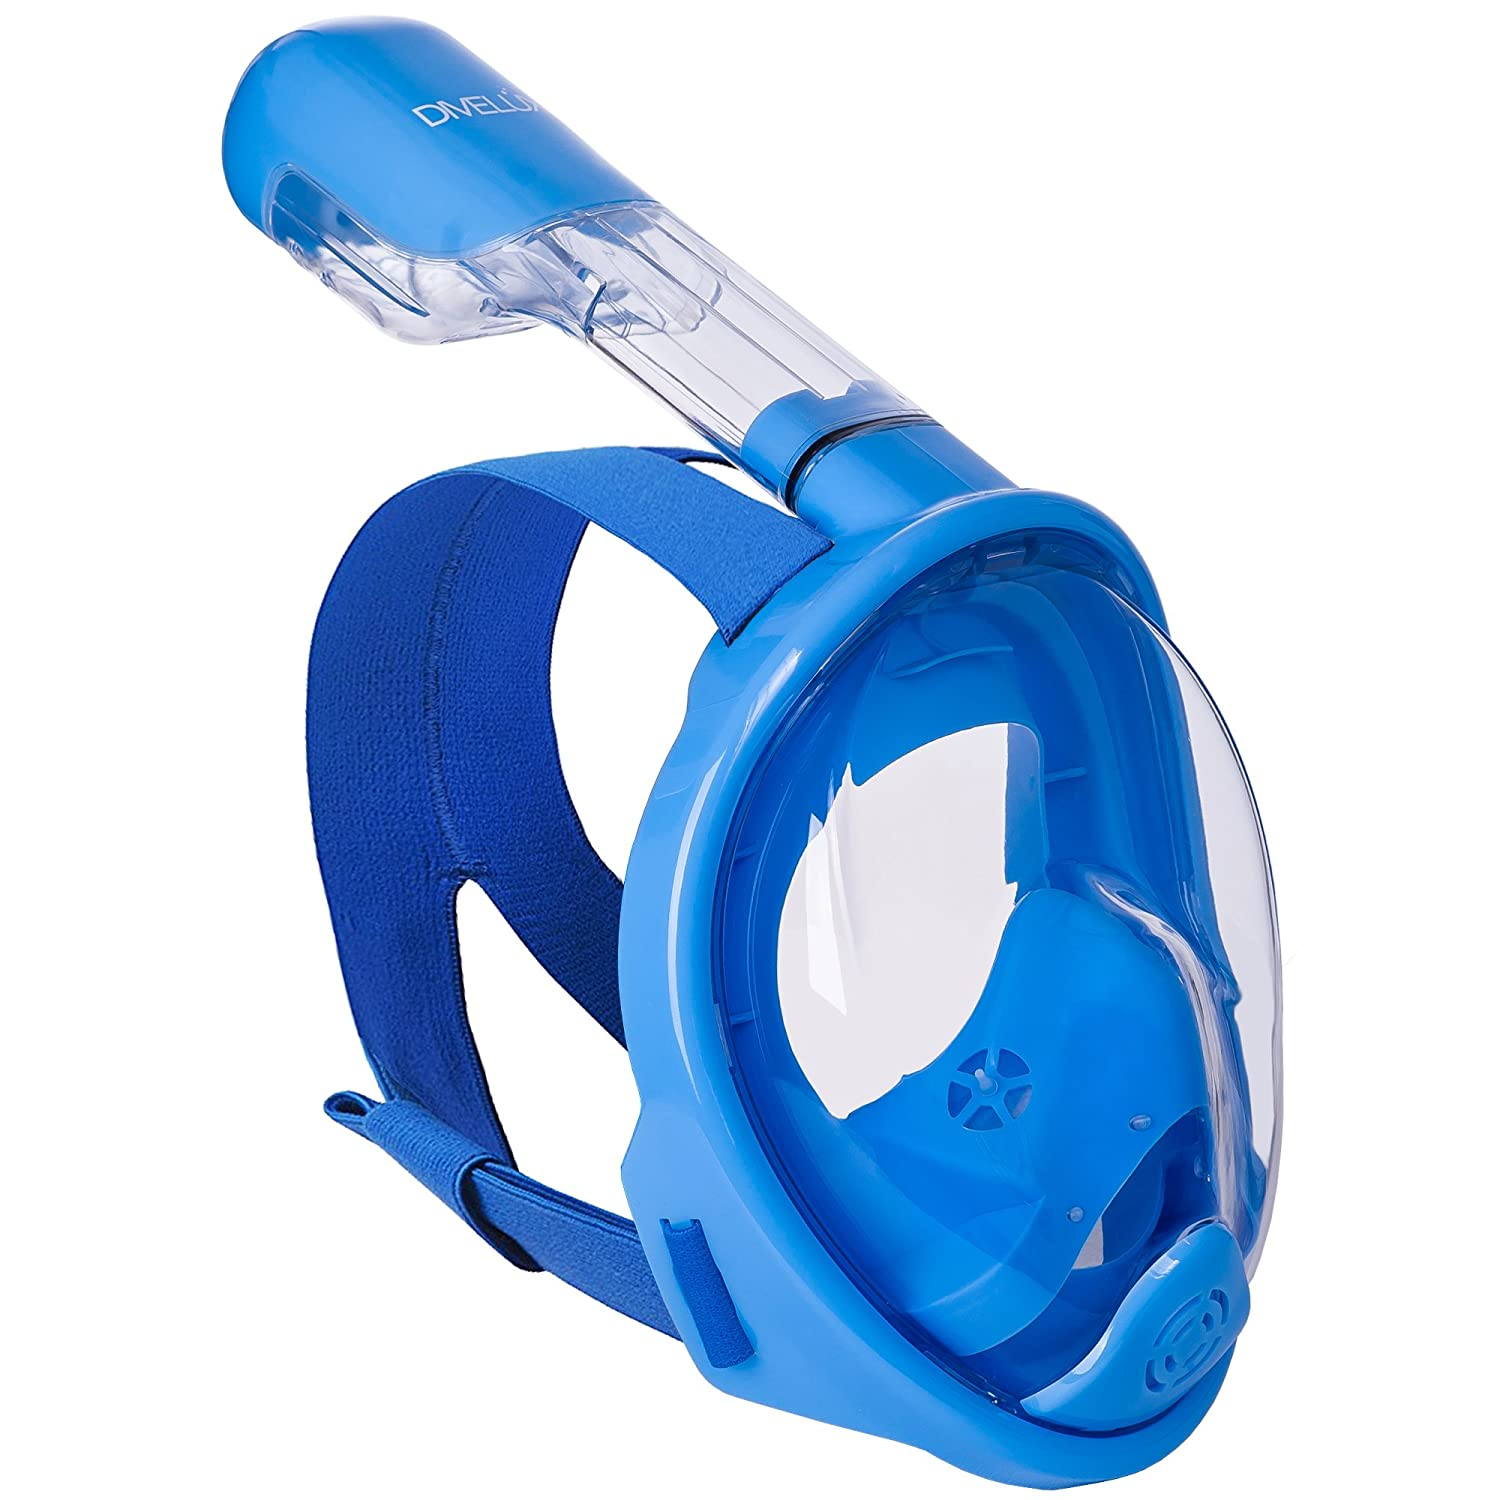 DIVELUX SNORKEL MASK Review